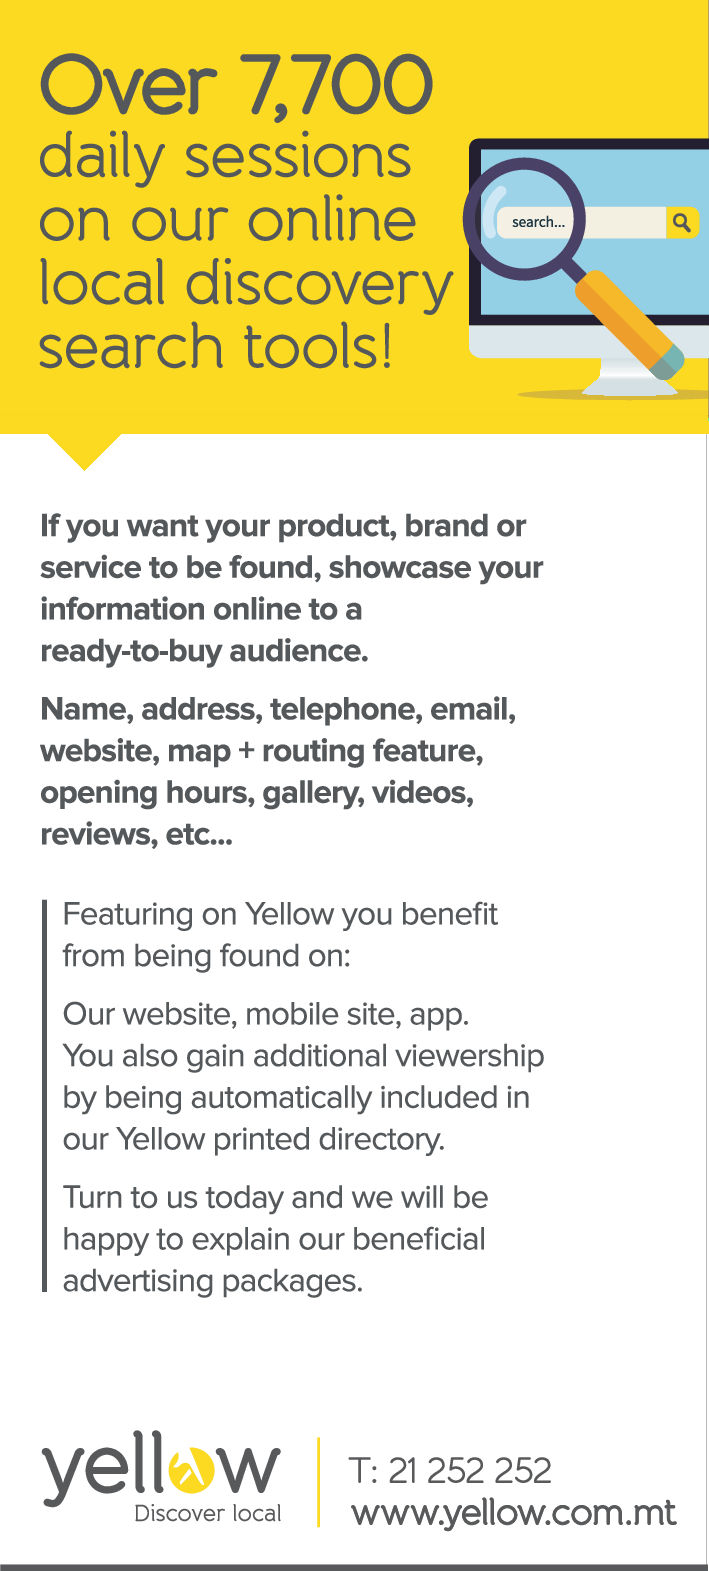 Yellow, Discover local - Advertising-Internet in Marsa